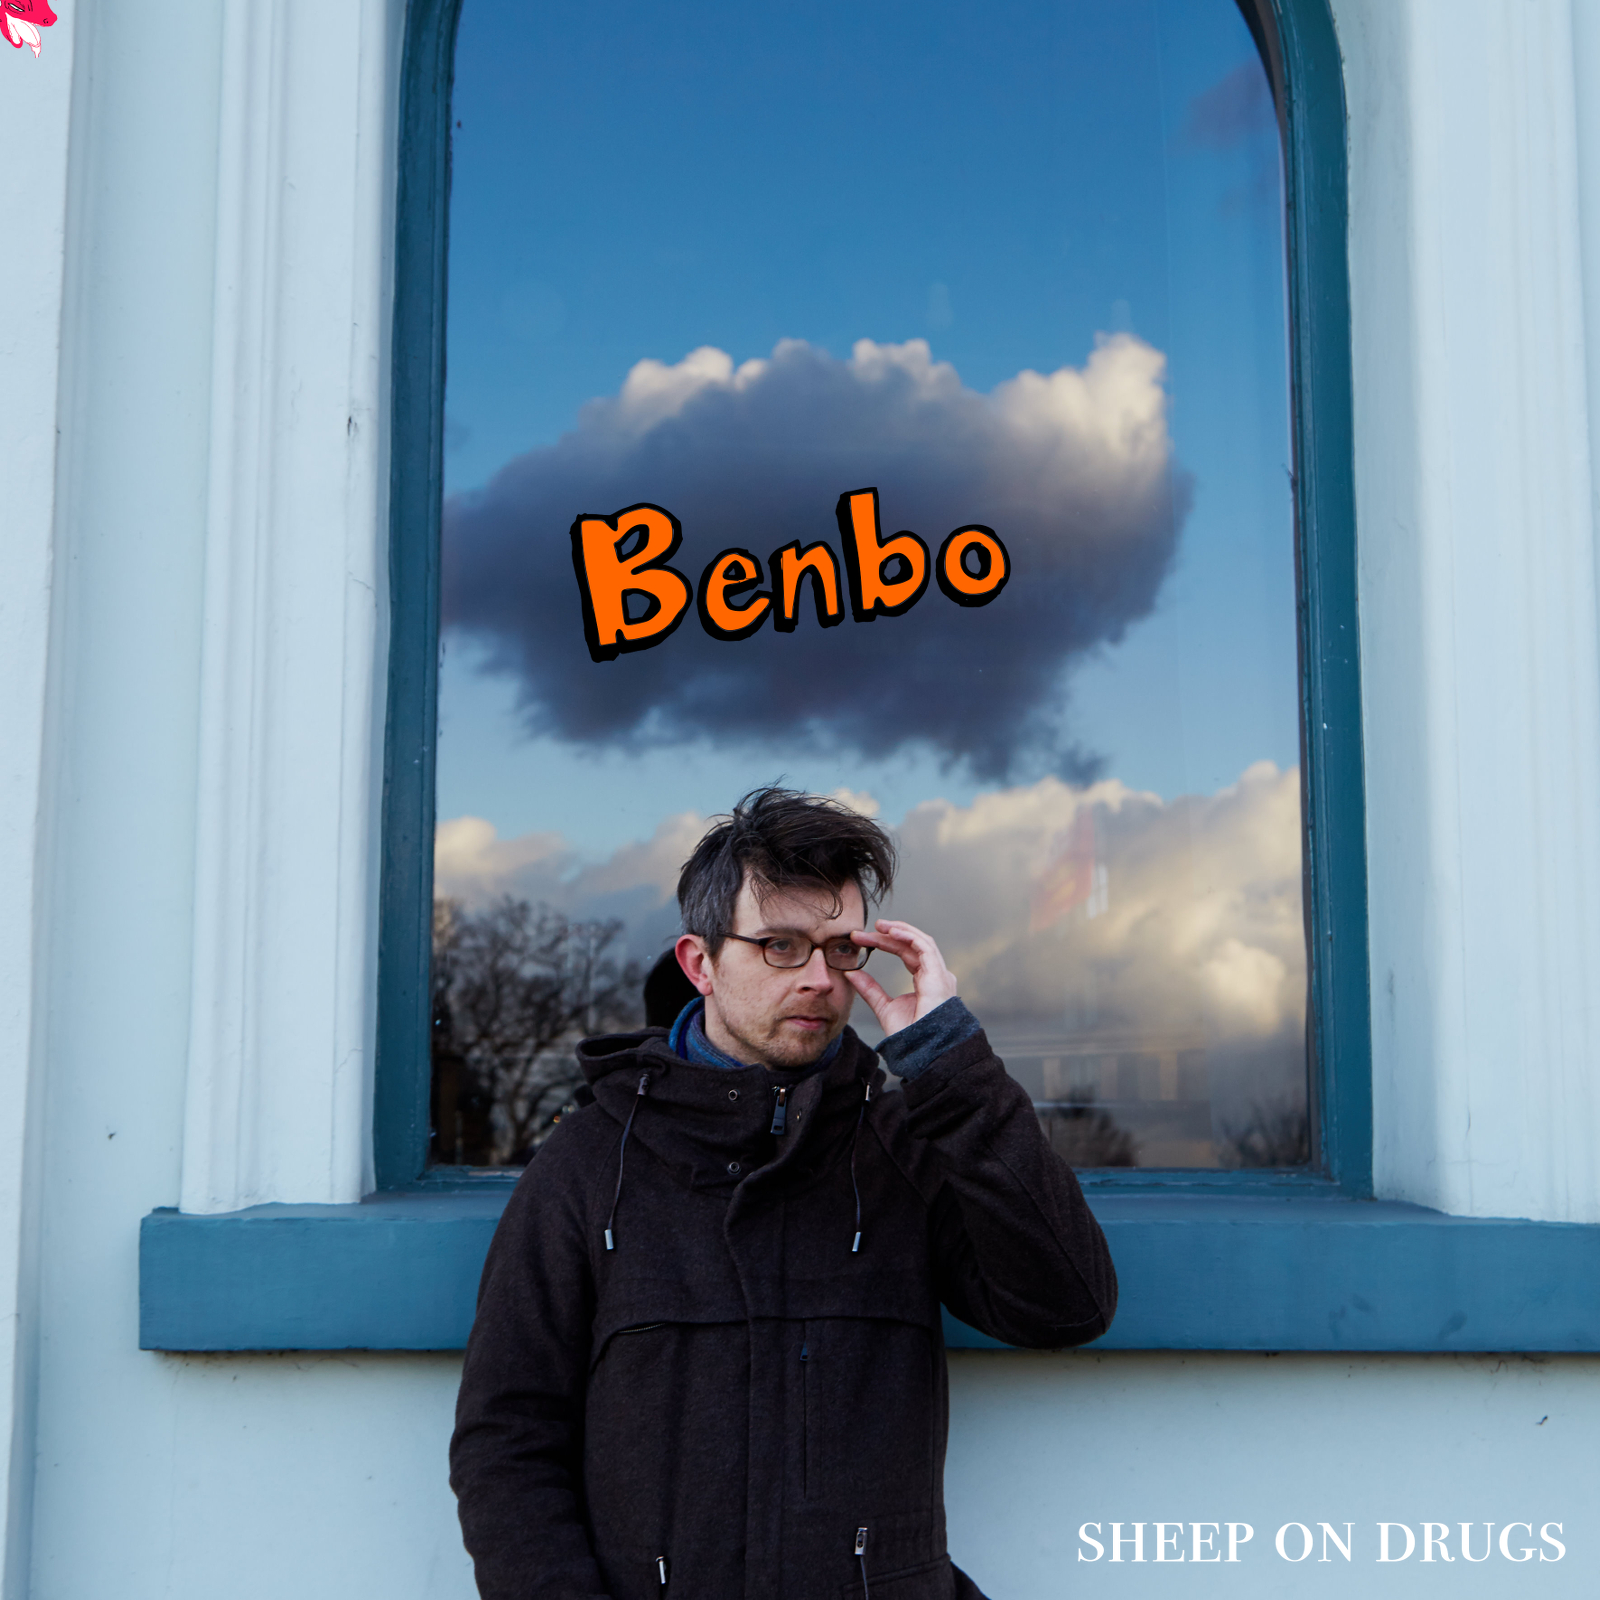 Benbo: EP1 (photo by Ray Fiasco)